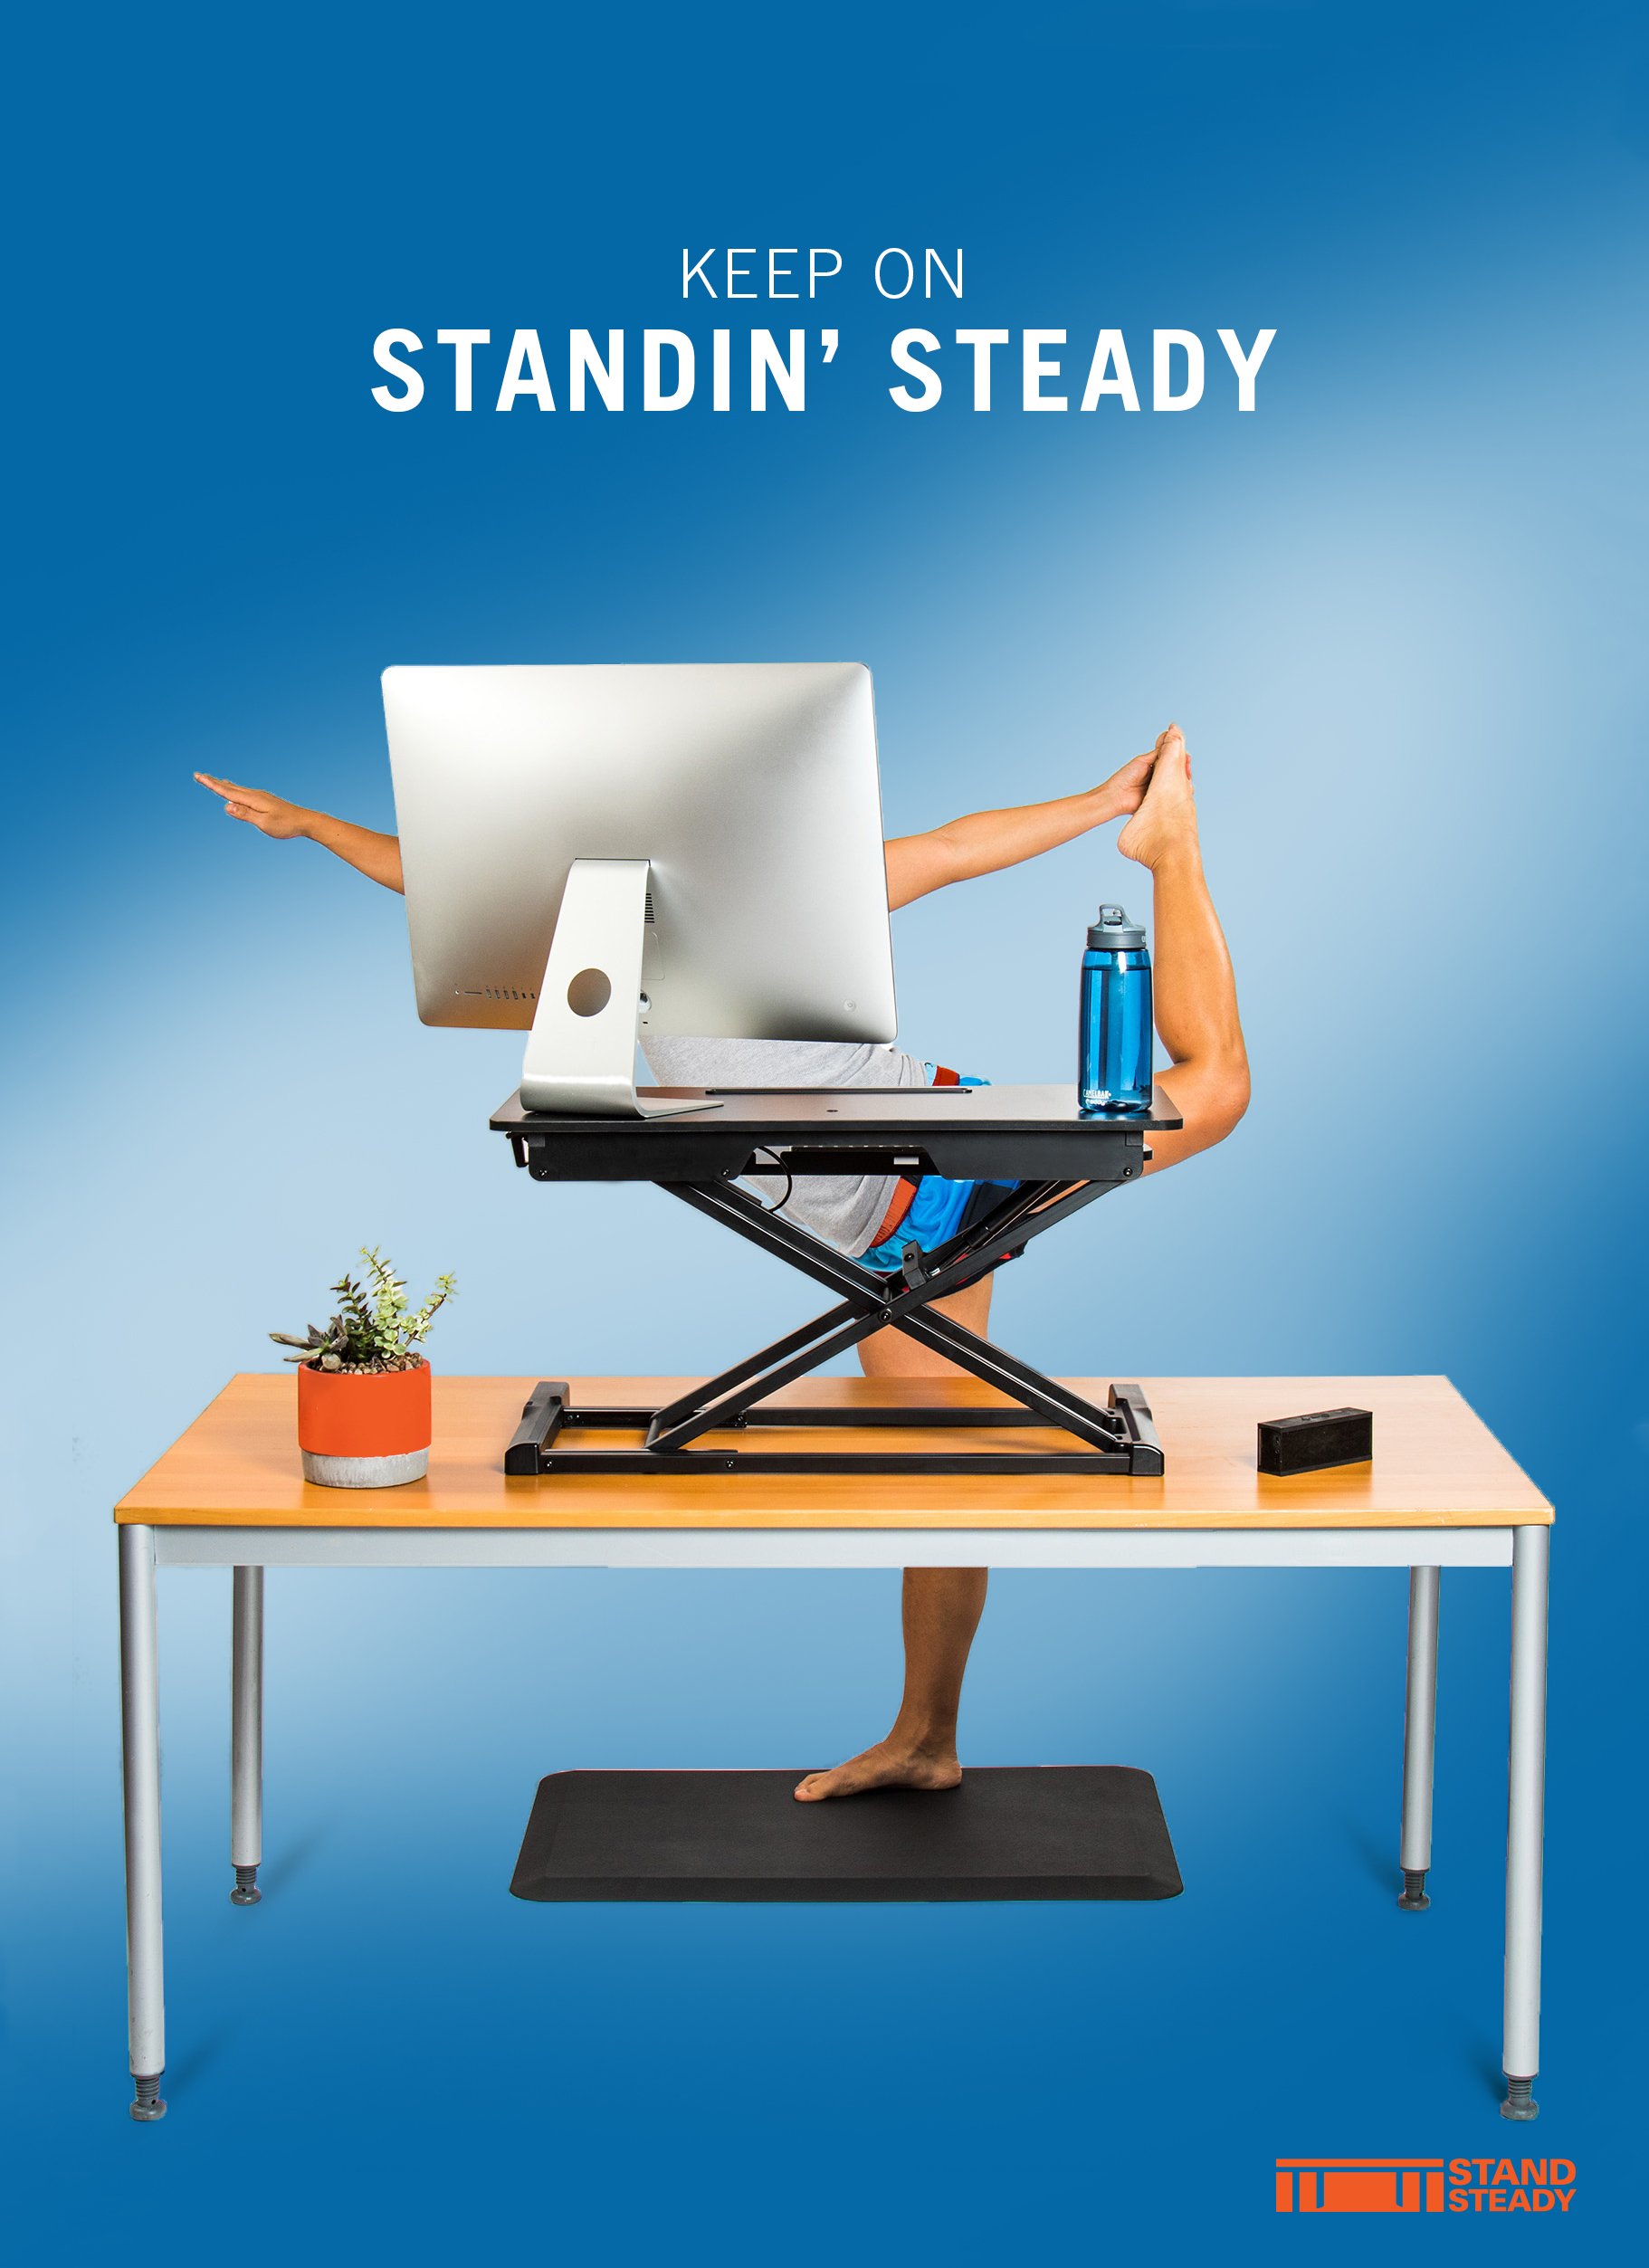 SS-349_StandSteady_FlexProHero_Yoga_0078_Concept.jpg